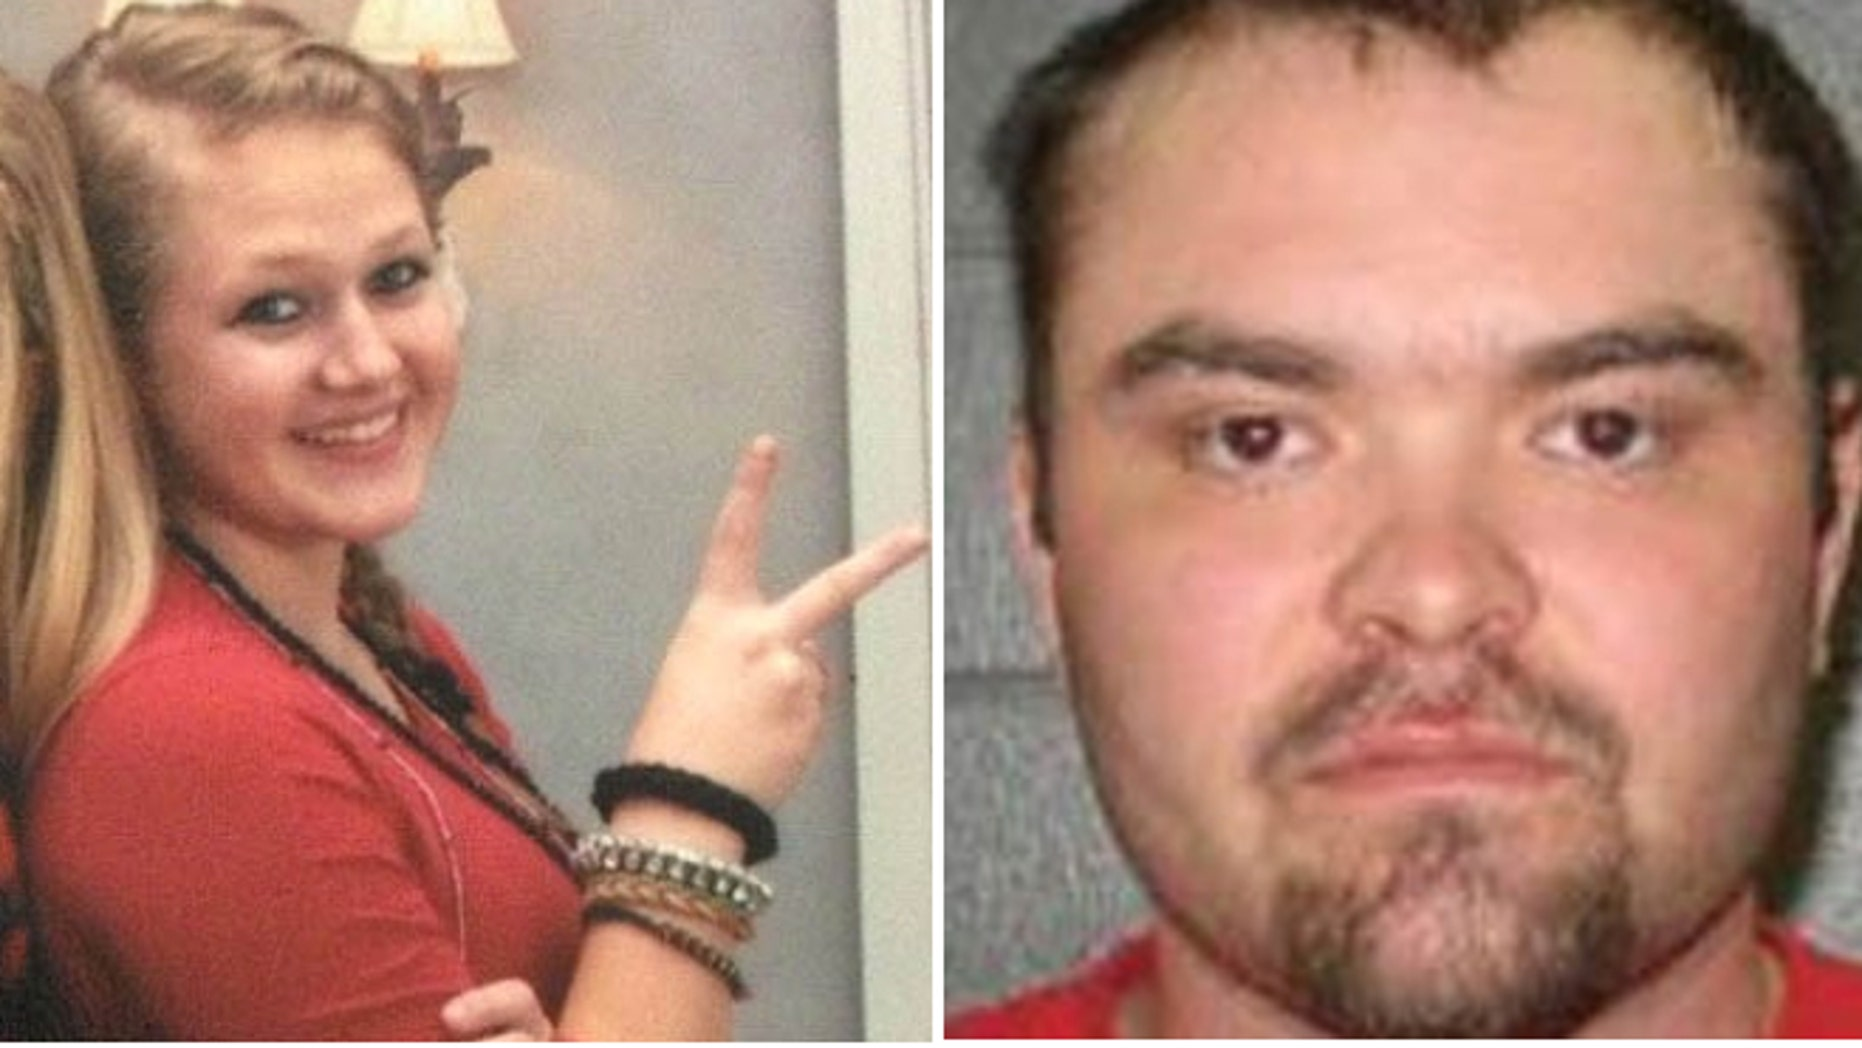 Authorities believe Molly Linhardt, 16, may be with Benjamin Kinkade, 27, a registered sex offender.